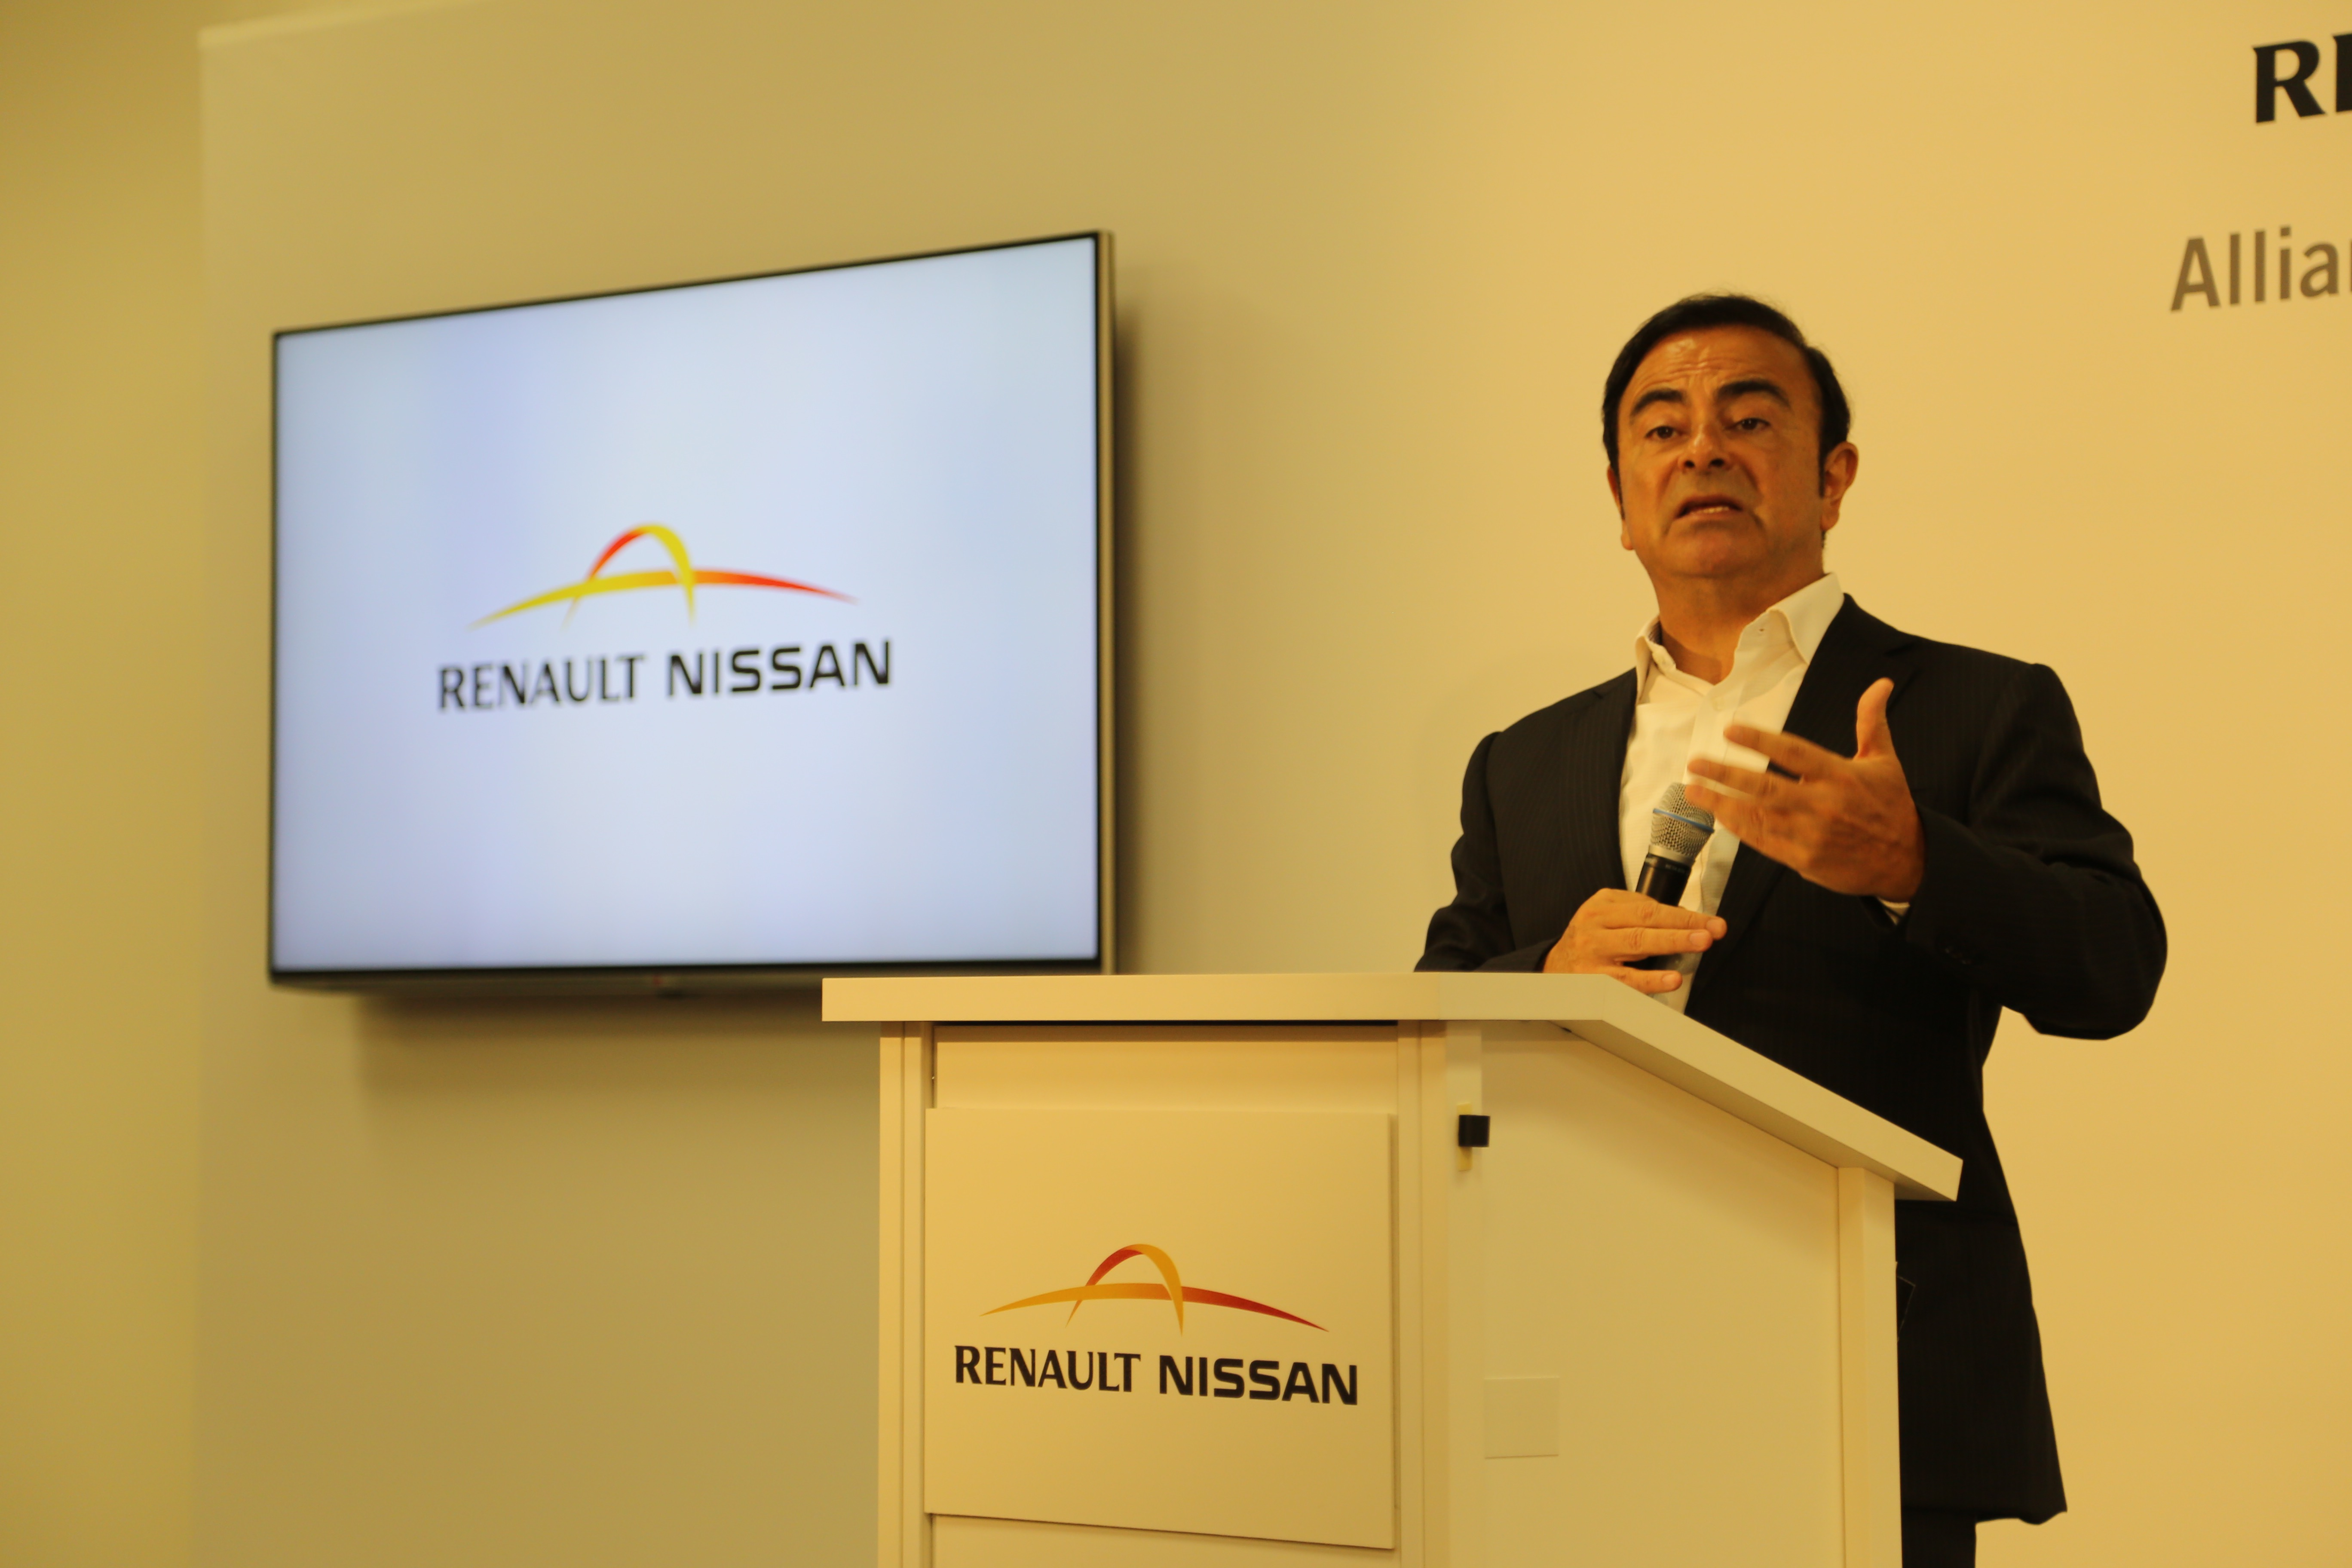 Nissan's CEO Carlos Ghosn at Nissan's Silicon Valley Research Center in Sunnyvale, Calif.